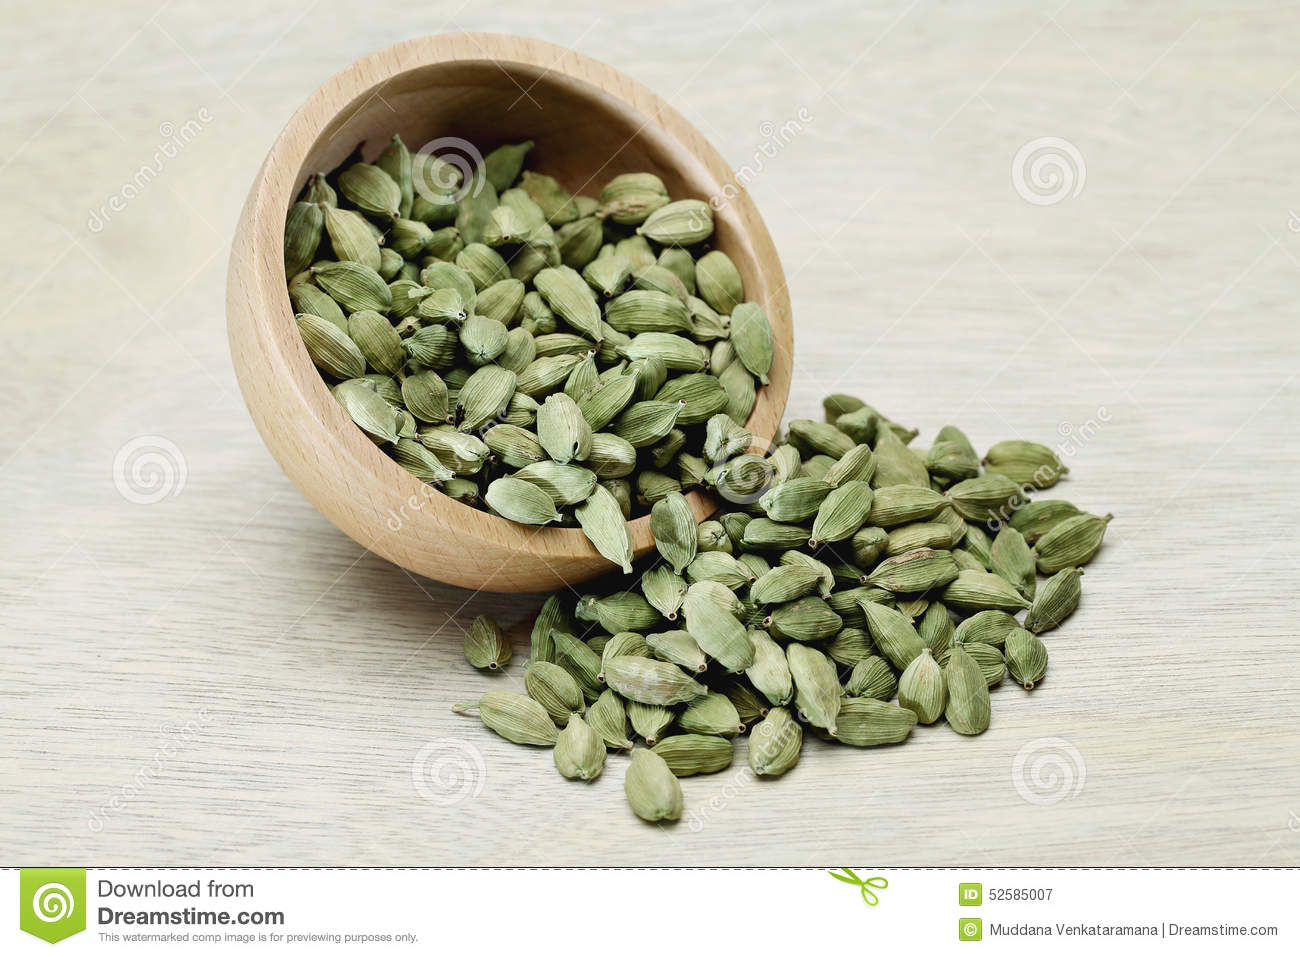 Cardamom Pods In A Wooden Bowl Stock Photo.